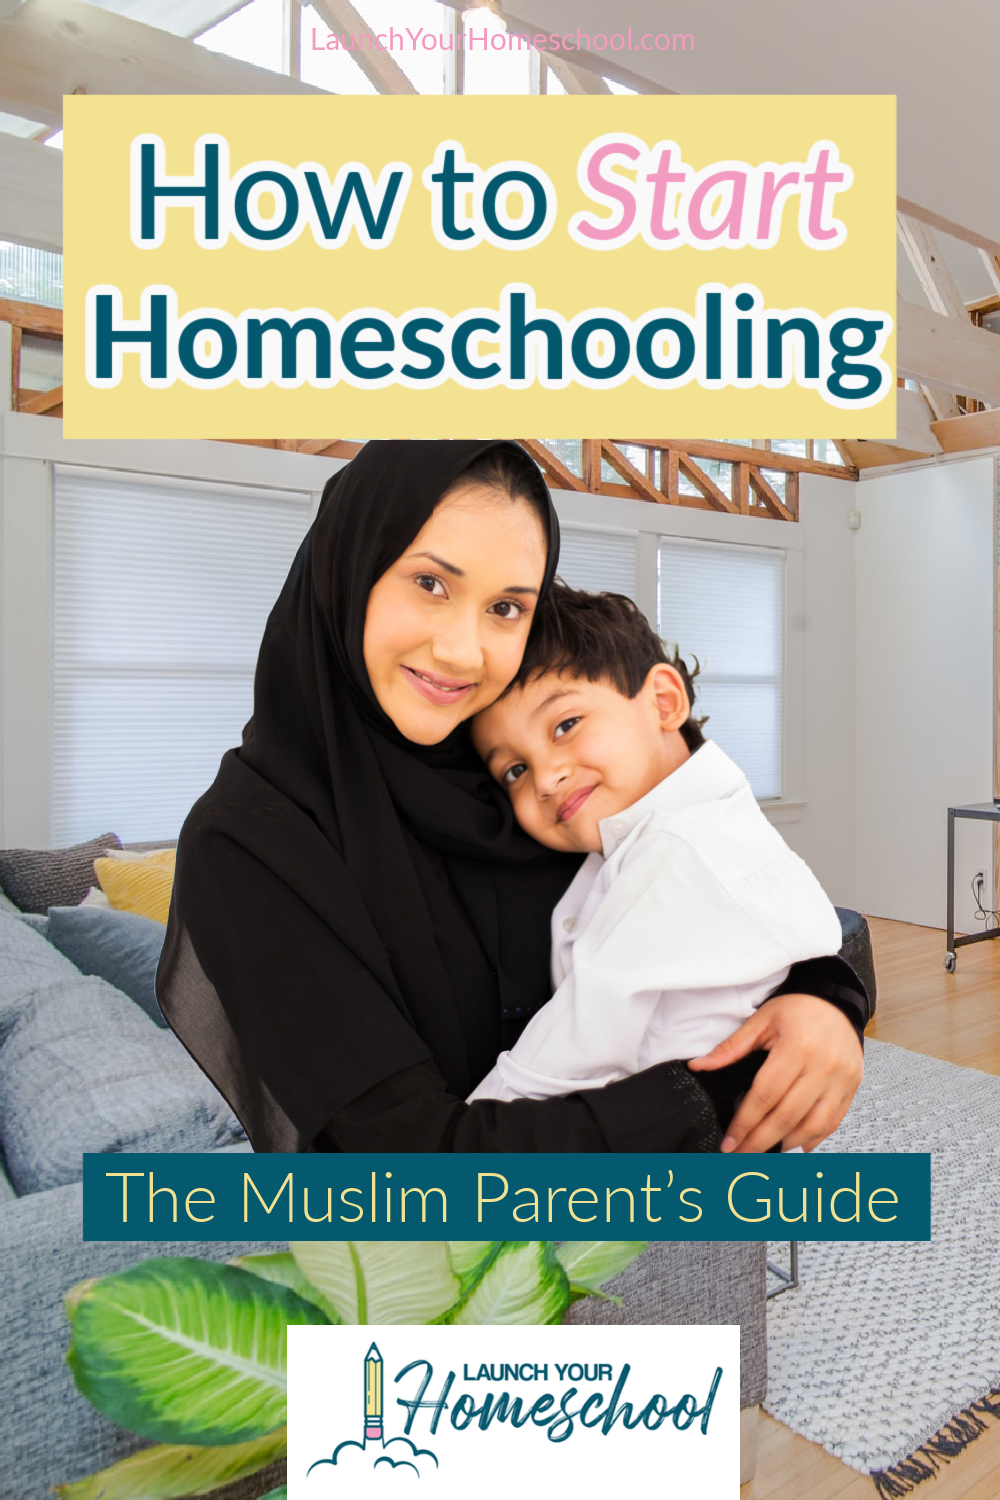 how to start homeschooling - the muslim parent's guide